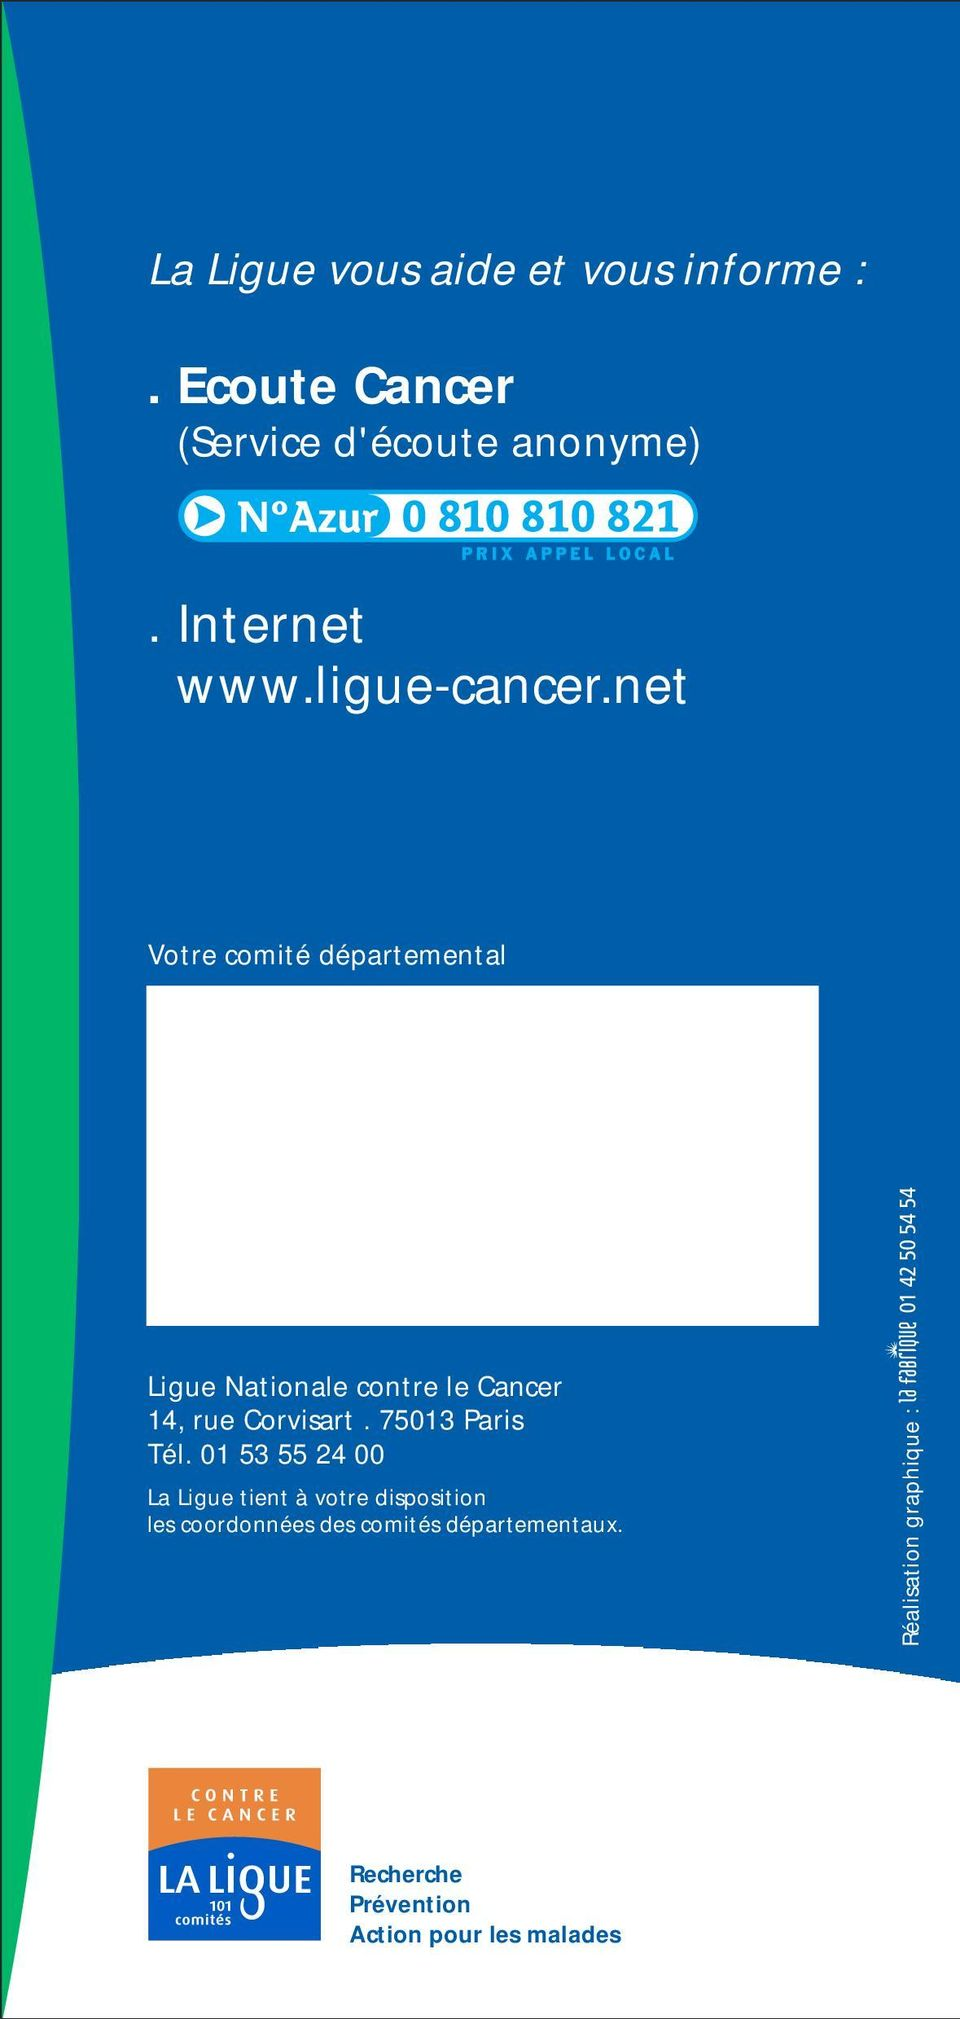 net Votre comité départemental Ligue Nationale contre le Cancer 14, rue Corvisart.